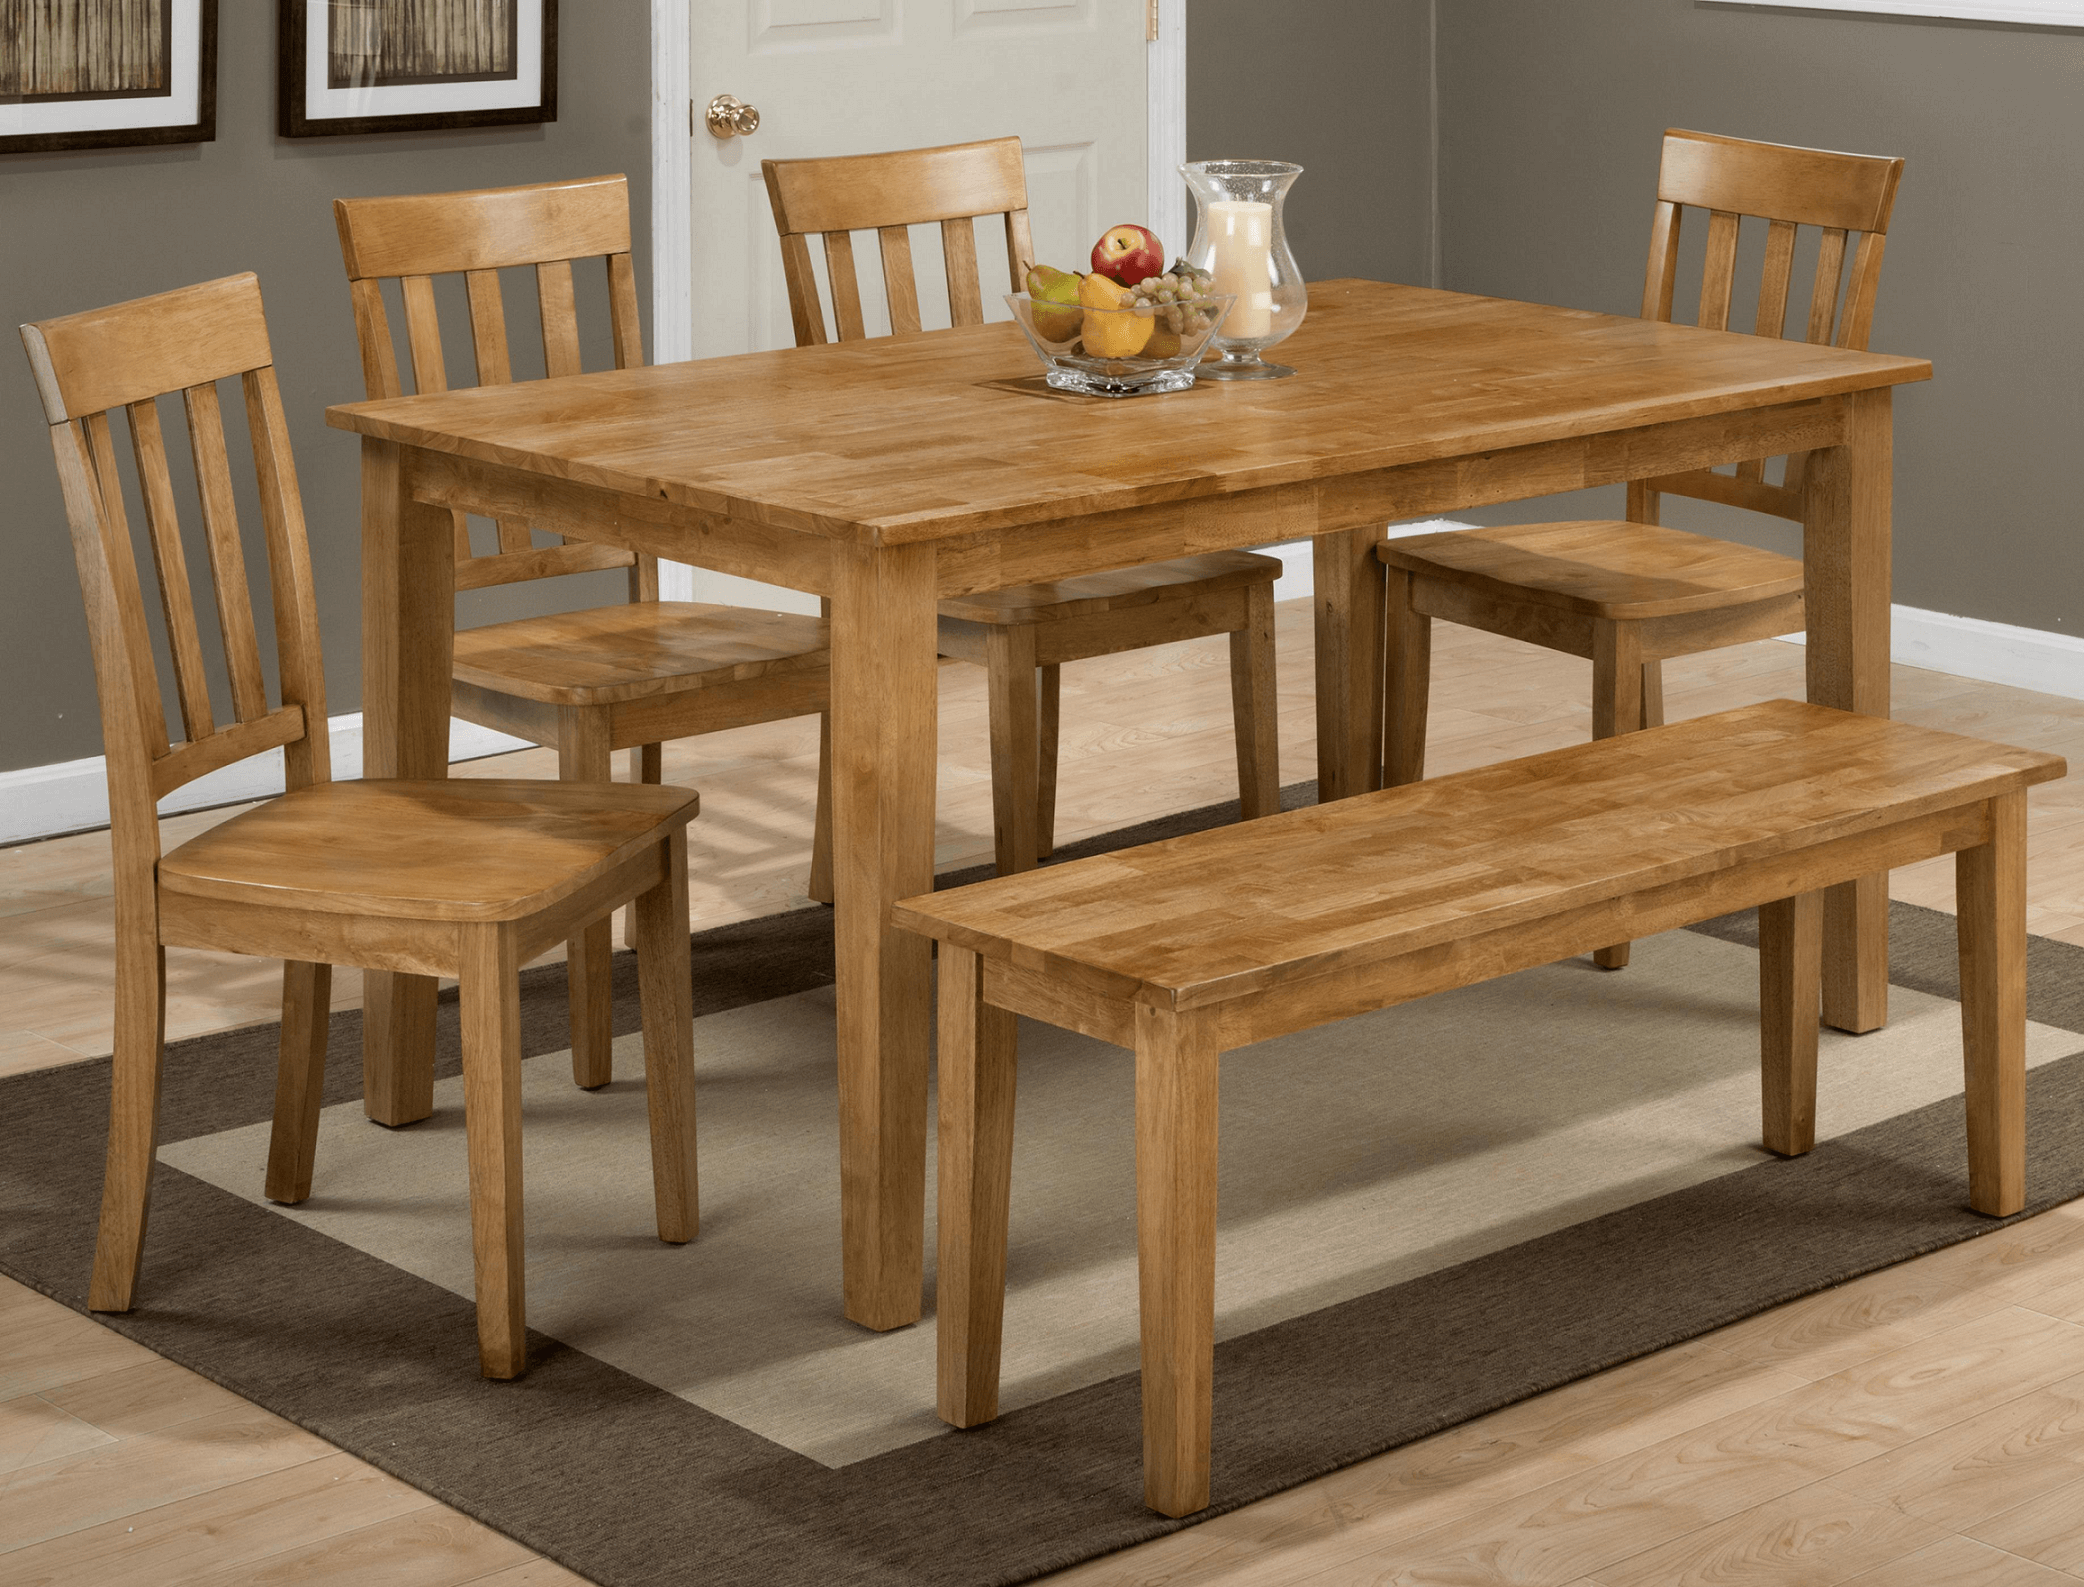 Dining table with benches and chairs